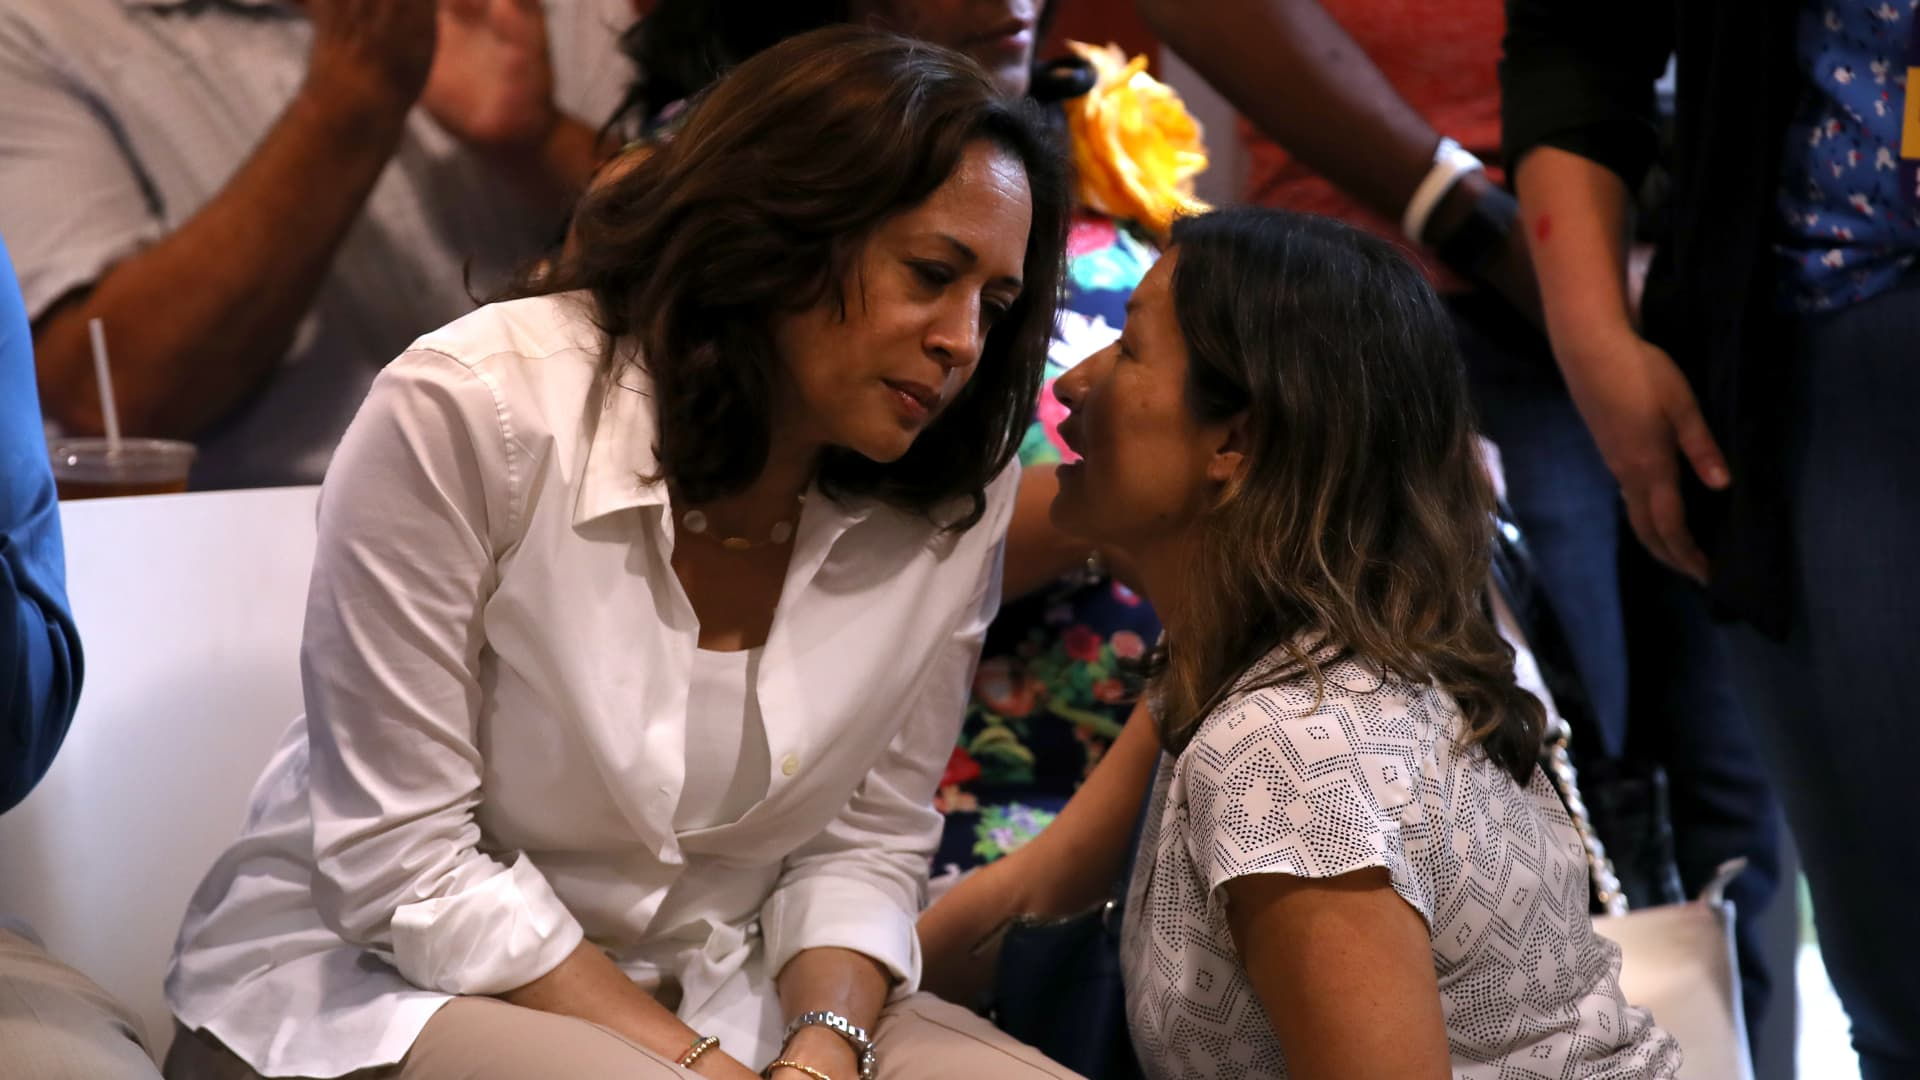 Democratic presidential hopeful U.S. Sen. Kamala Harris (L) (D-CA) talks with her aide Julie Chavez Rodriguez (R) during the Asian and Latino Coalition event at Jasper Winery on August 10, 2019 in Des Moines, Iowa.